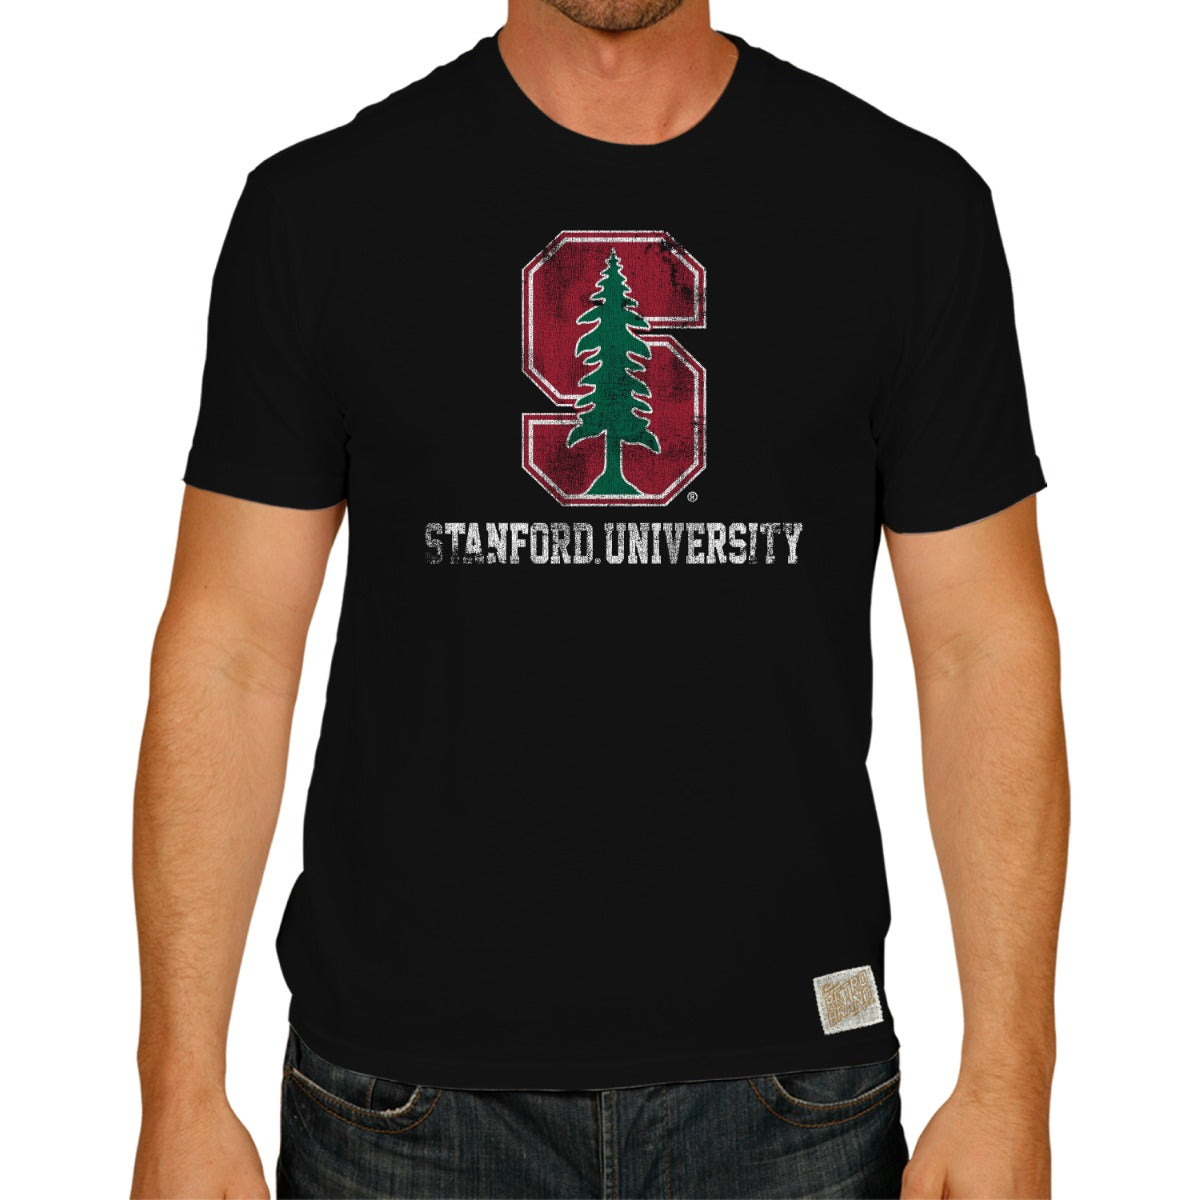 Stanford World's Best Tee